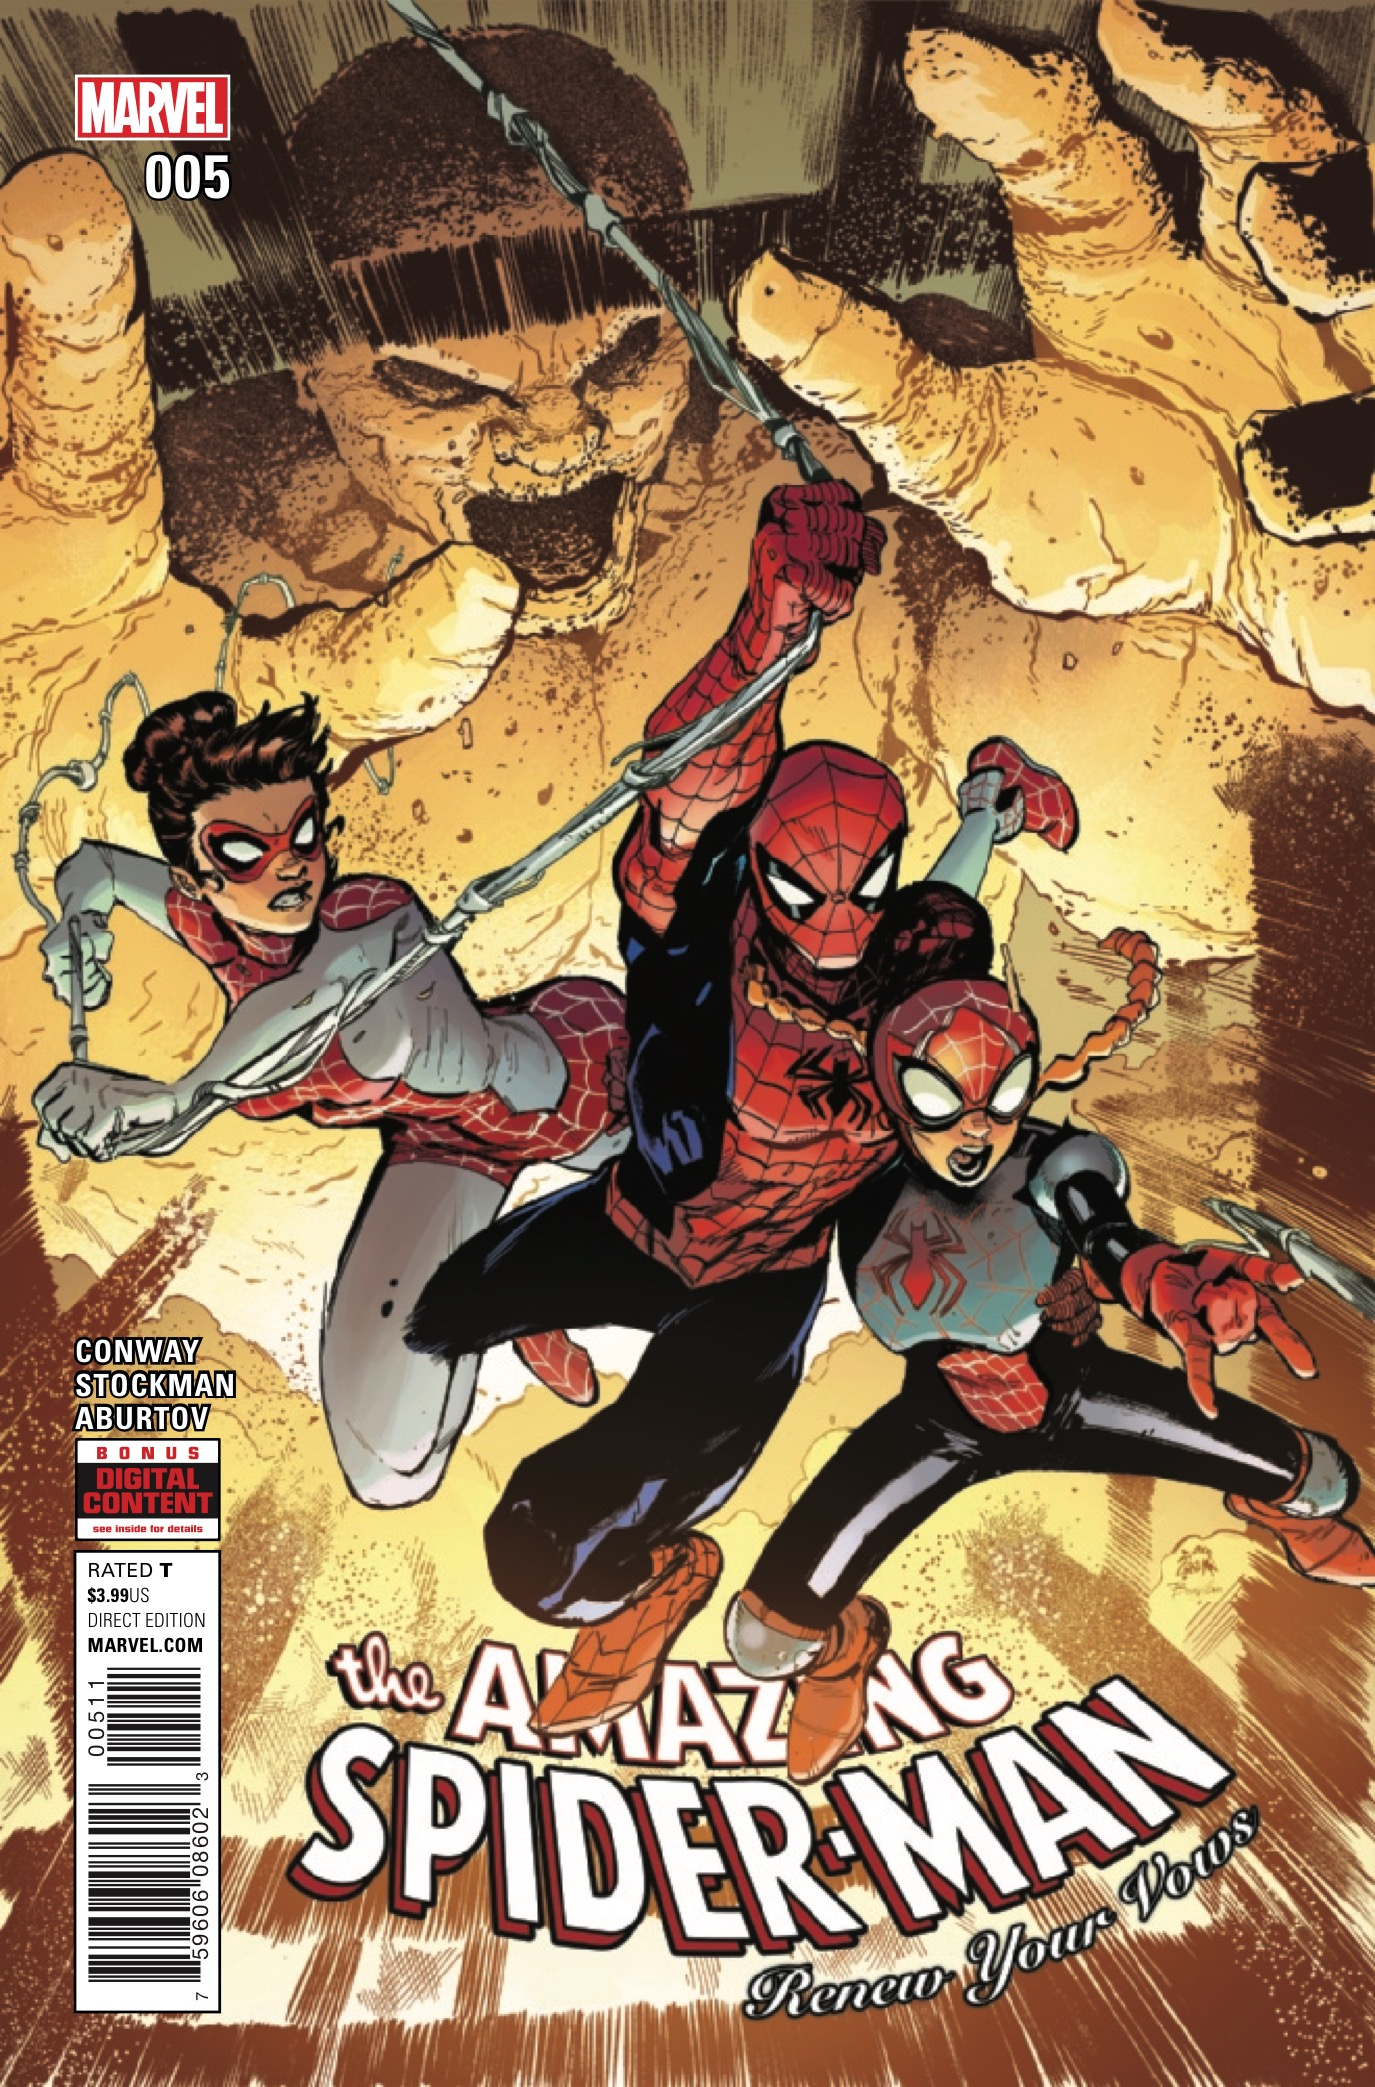 Marvel Preview: Amazing Spider-Man: Renew Your Vows #5